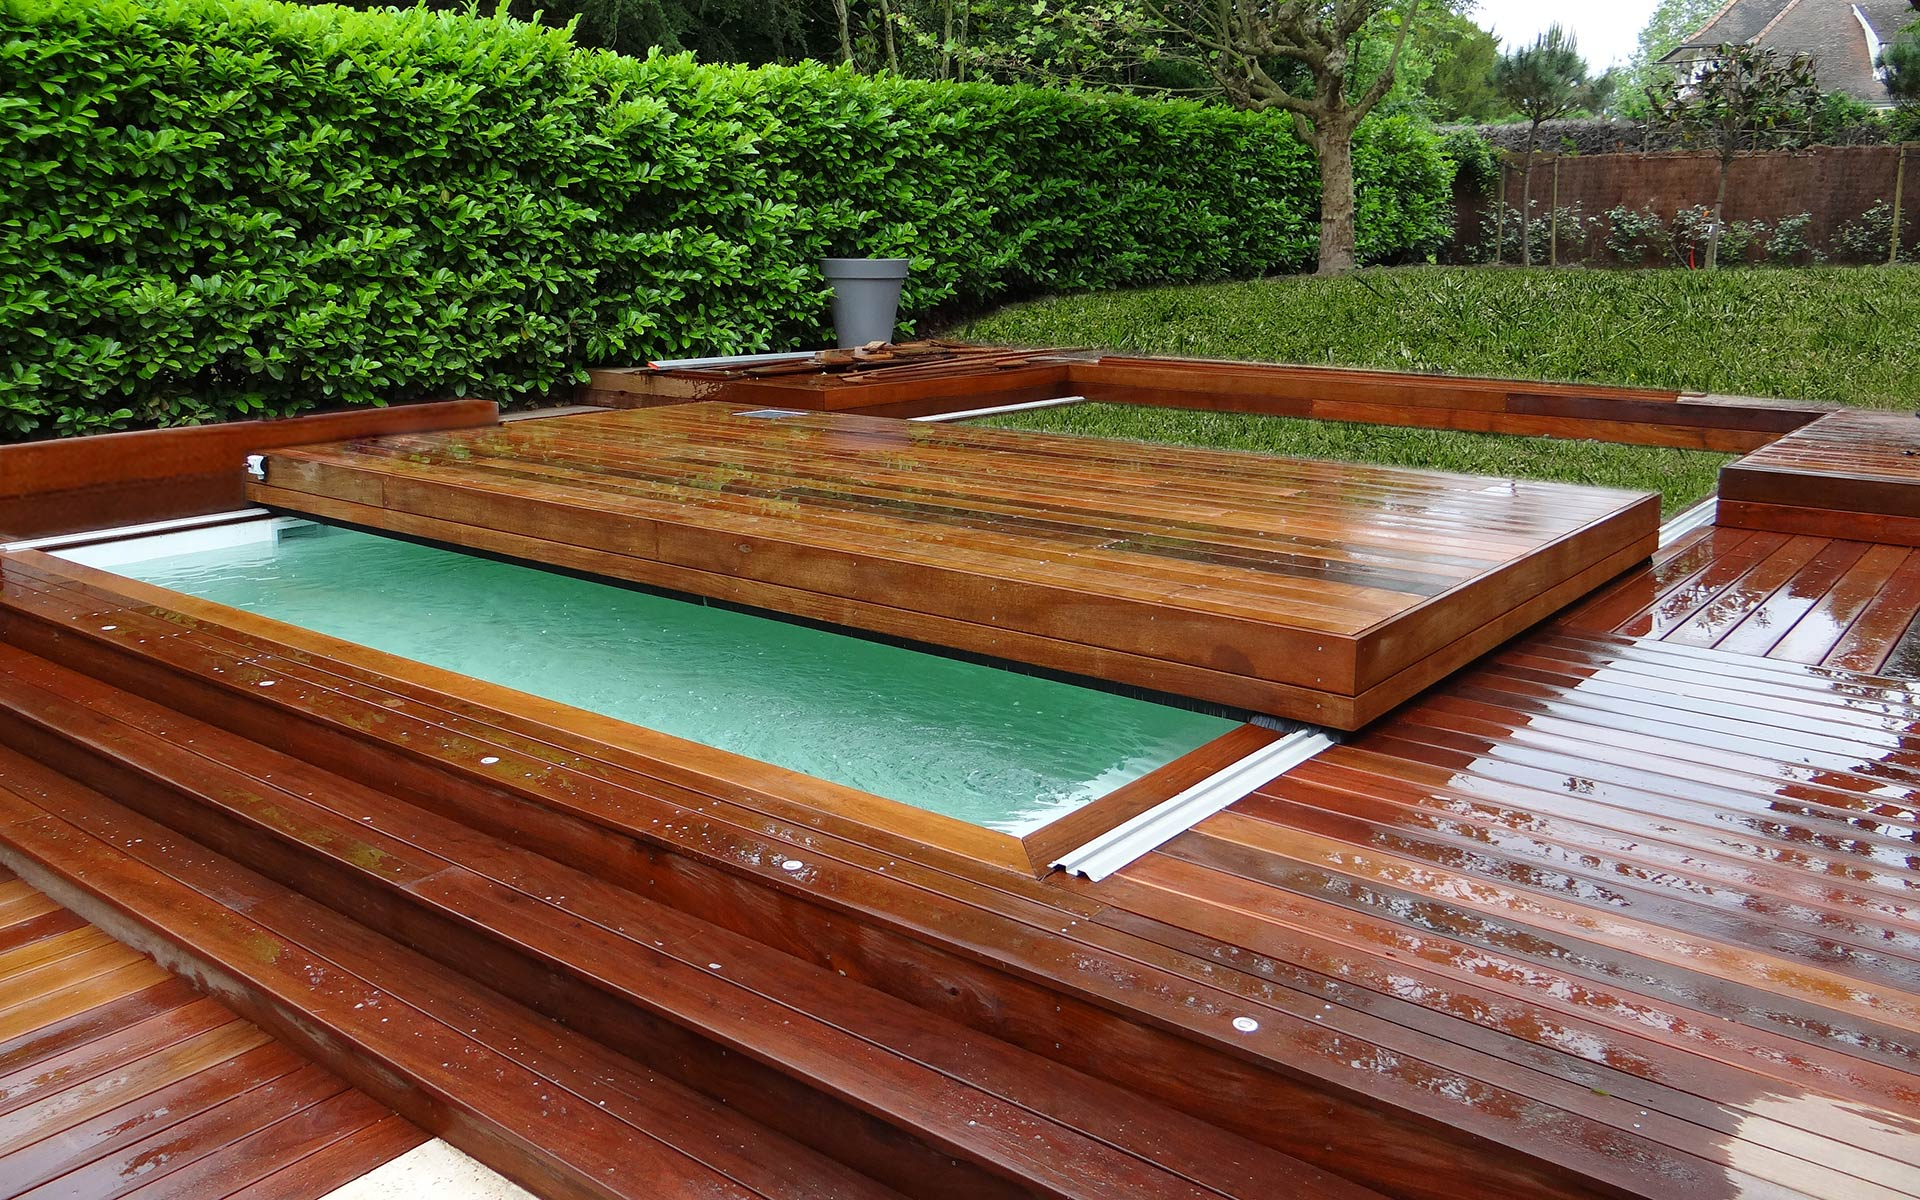 Terrasse mobile pour piscine hidden pool fond mobile for Piscine sol amovible